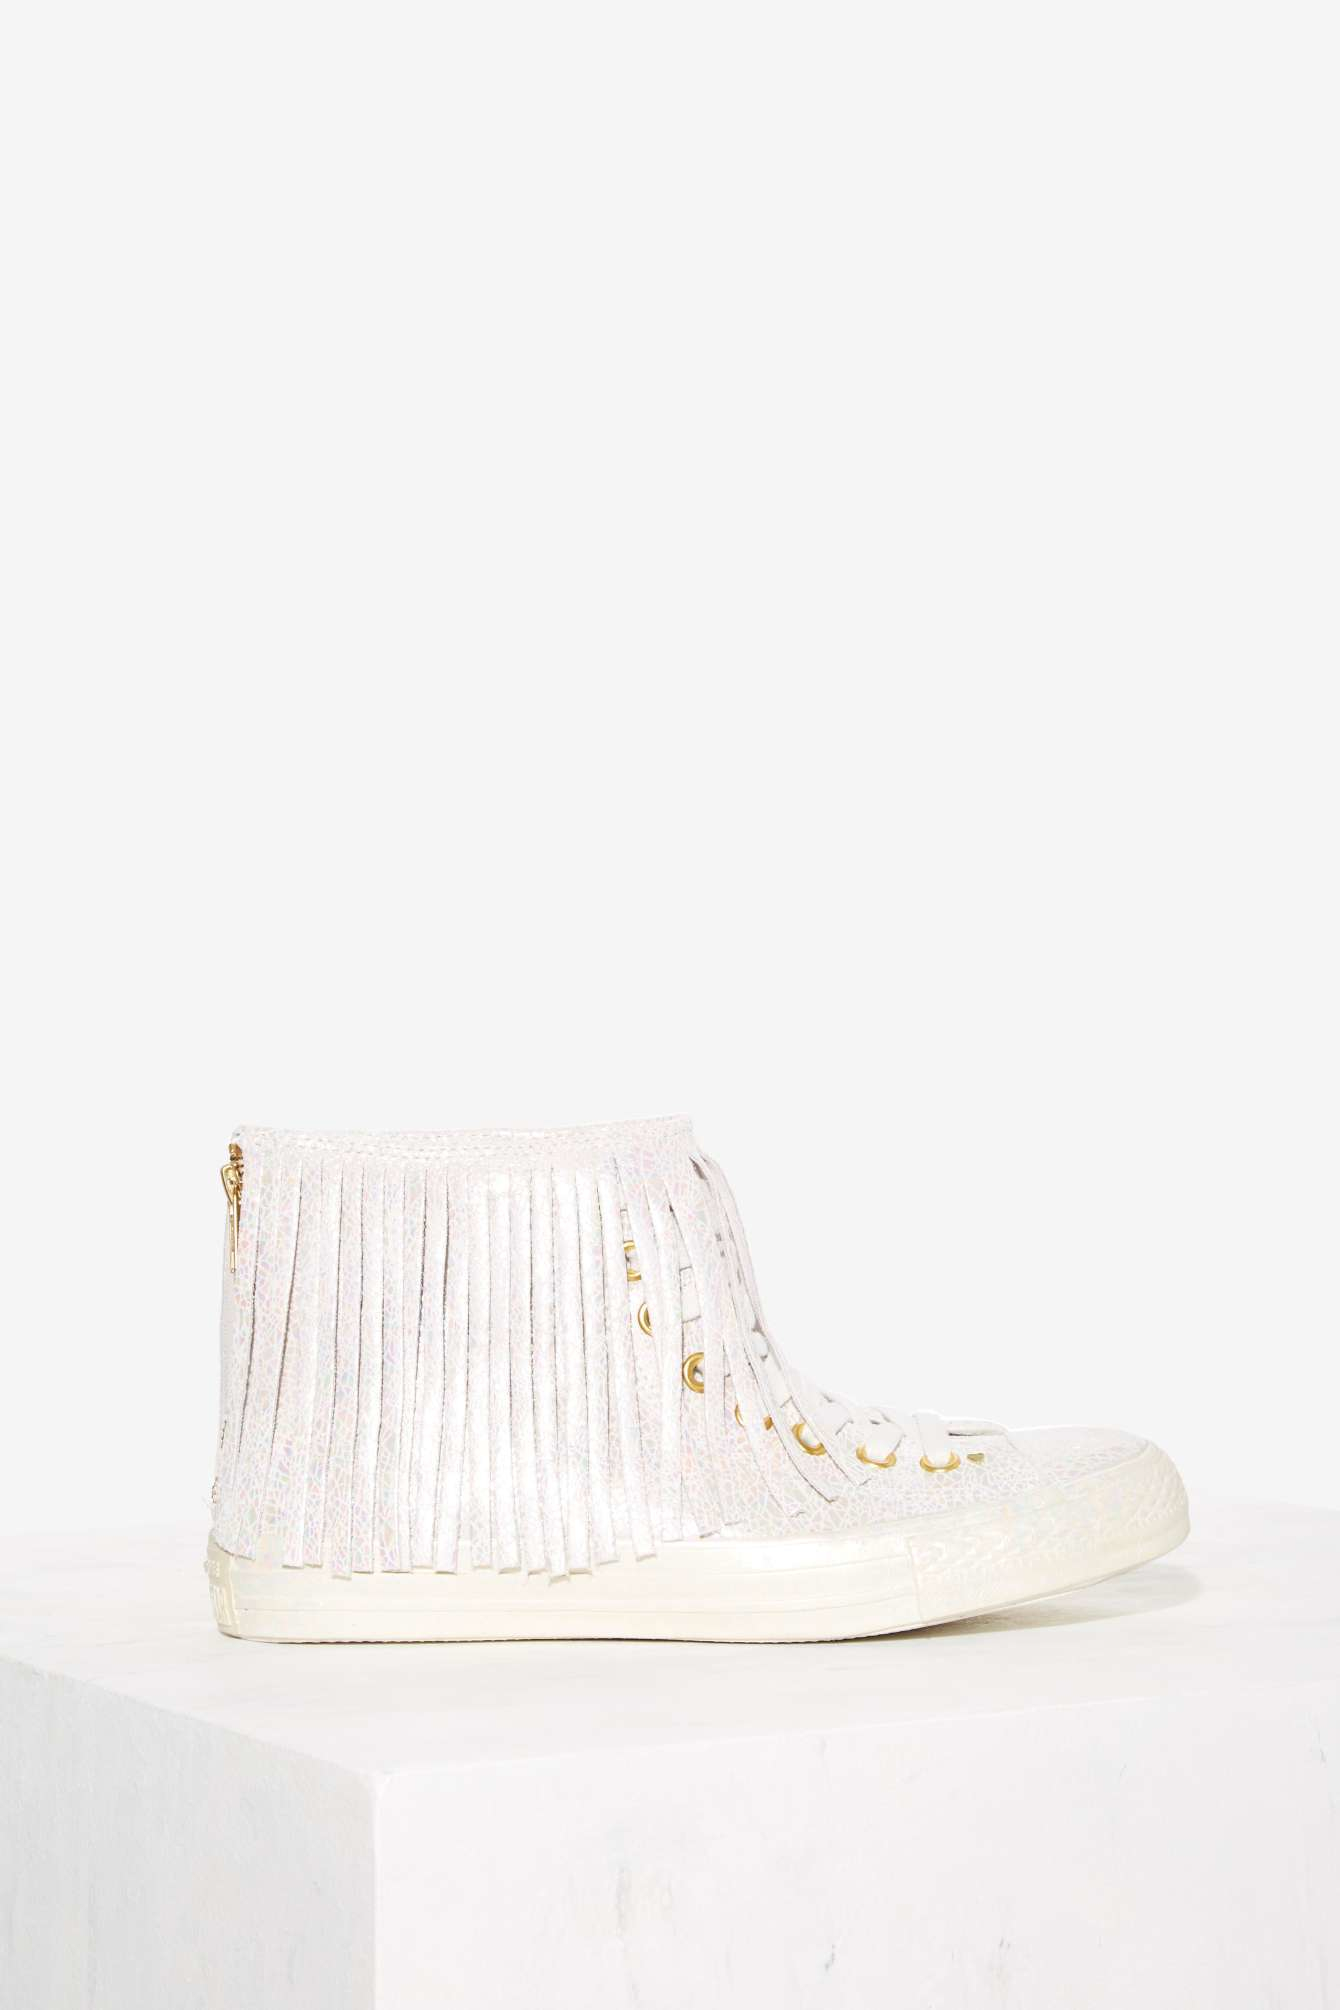 489c2d68d8e5 Lyst - Converse All Star Fringe High-top Leather Sneaker ...